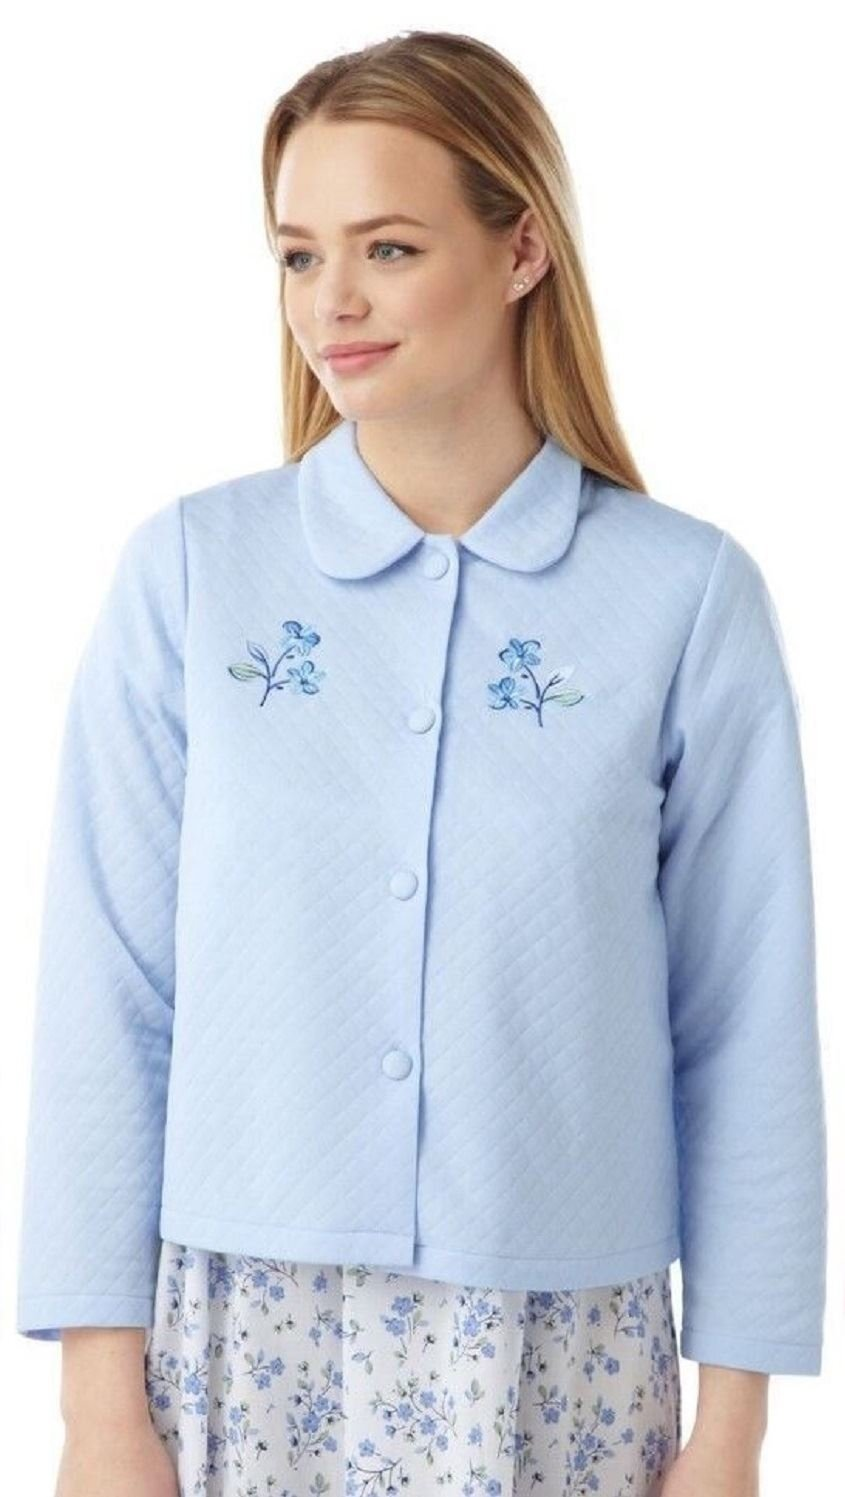 Marlon Ladies Lightweight Quilted Button Bed Jacket with Embroidery by MA08772 Blue 16-18